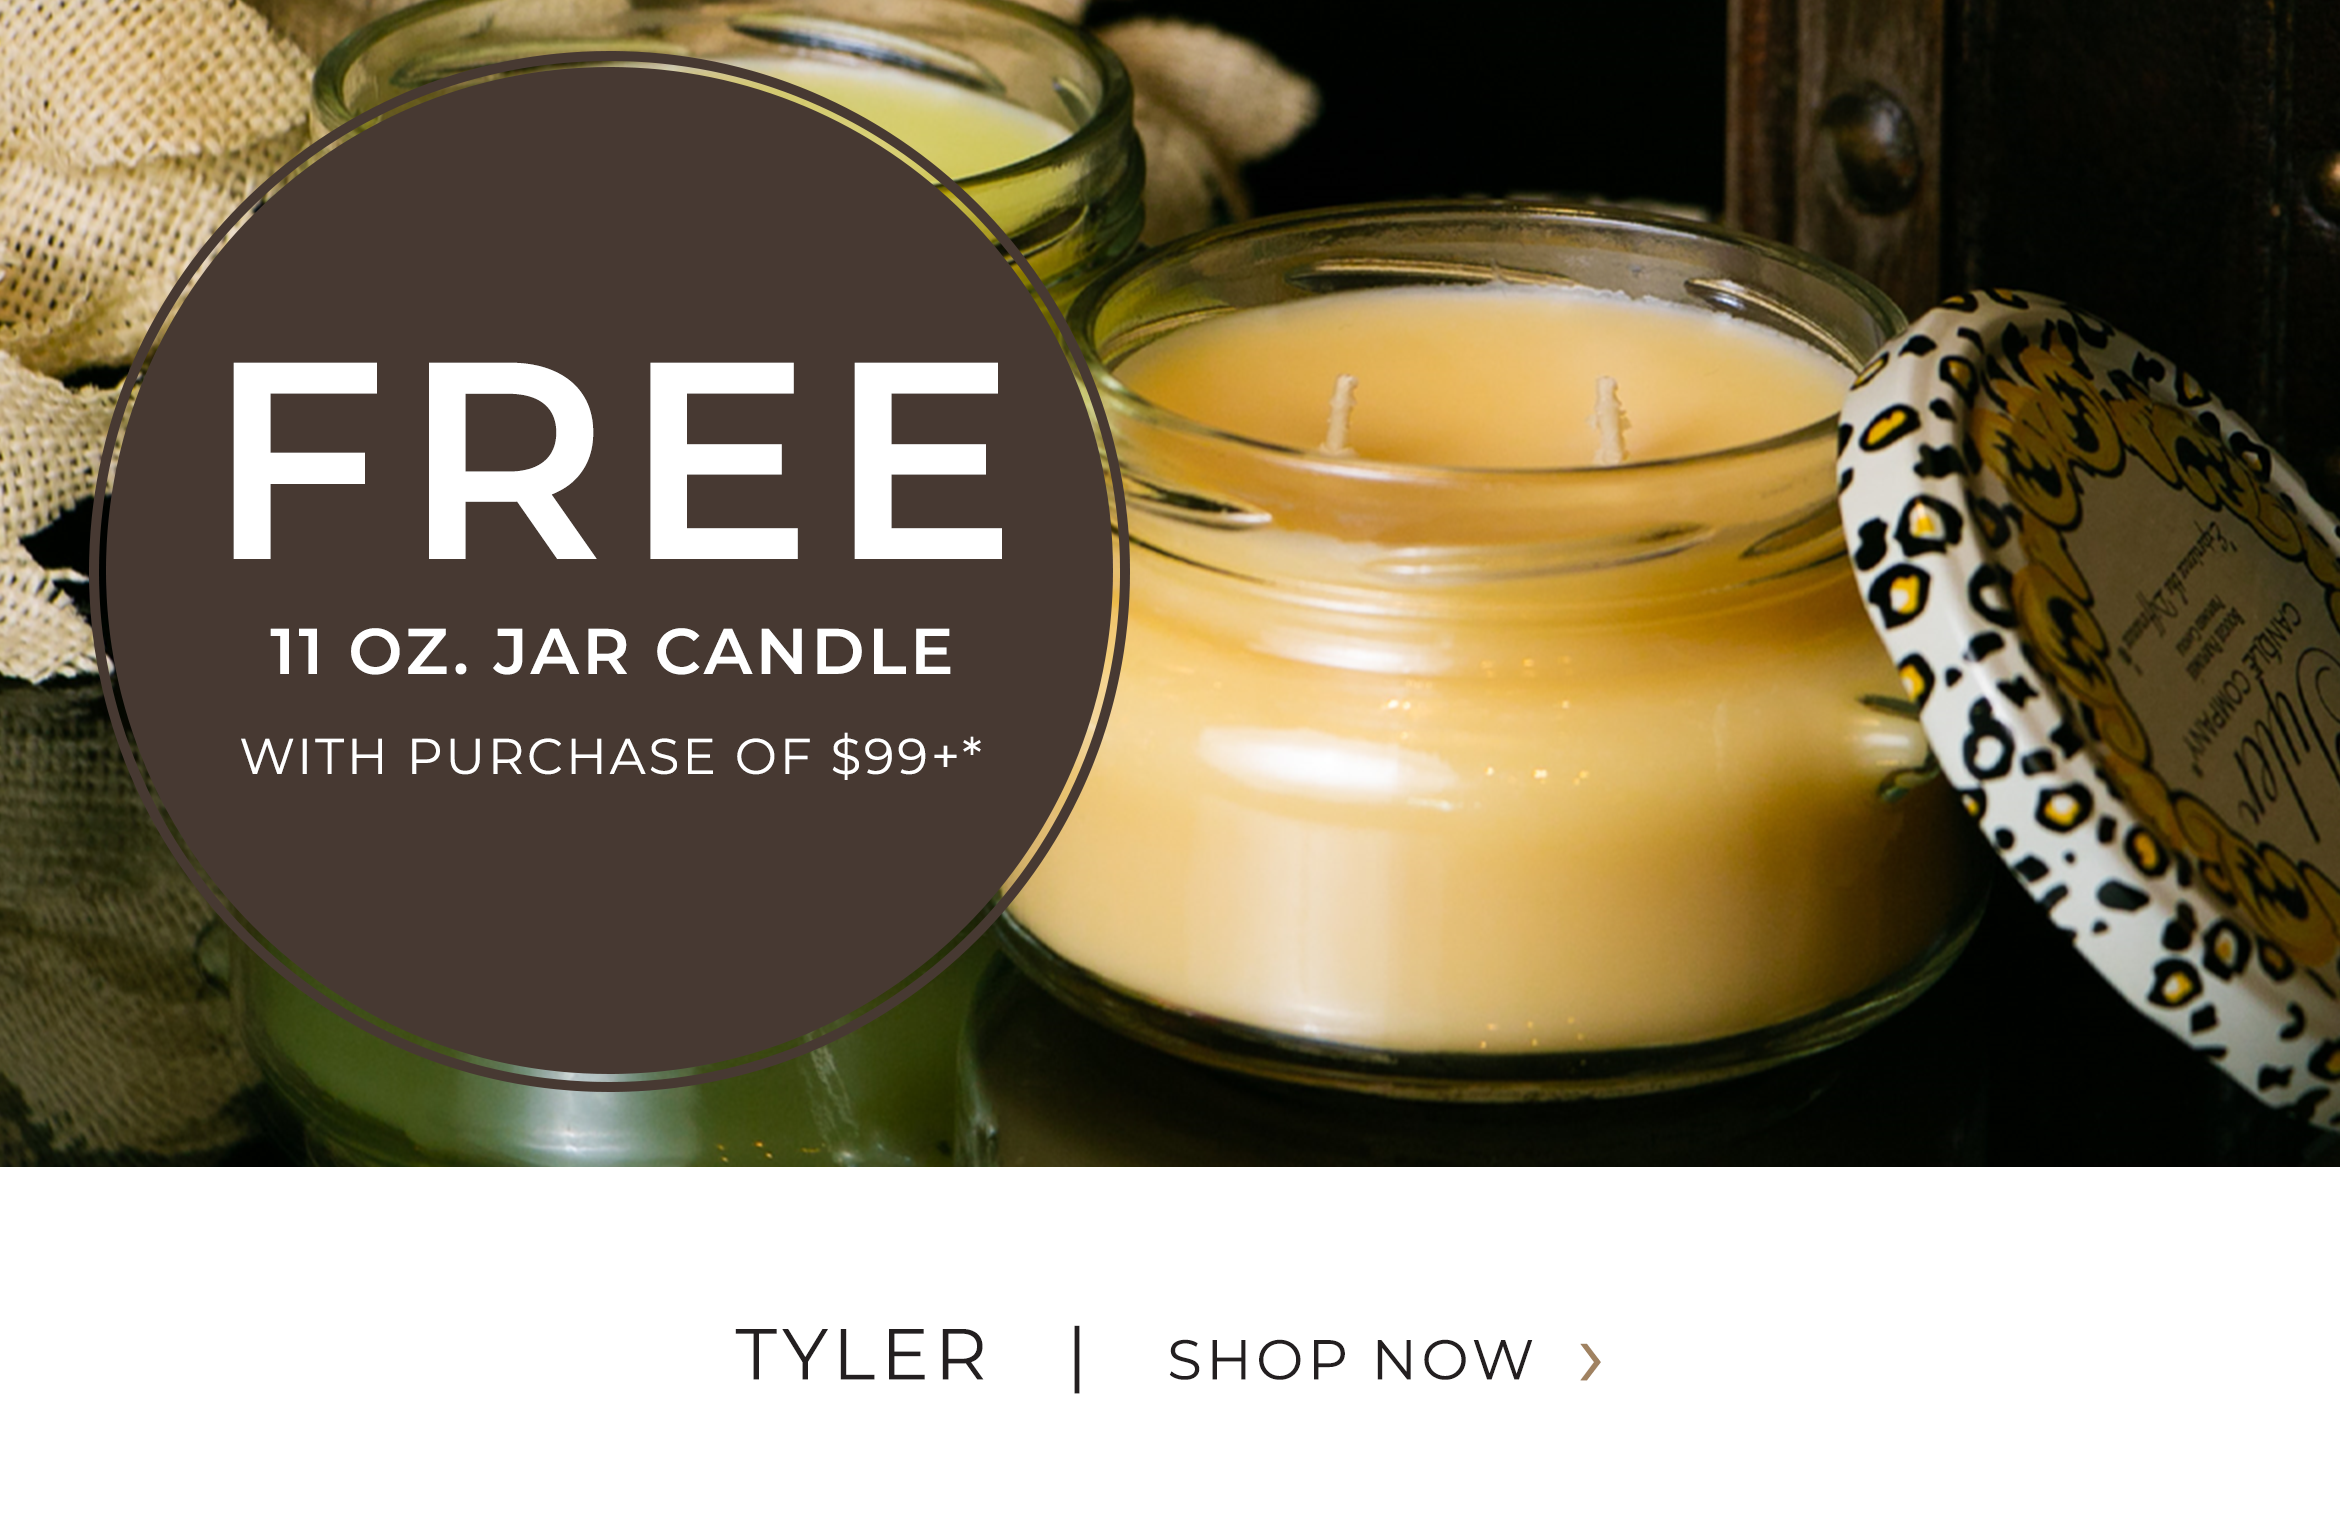 Tyler - FREE 11 oz. jar candle with purchase of $99